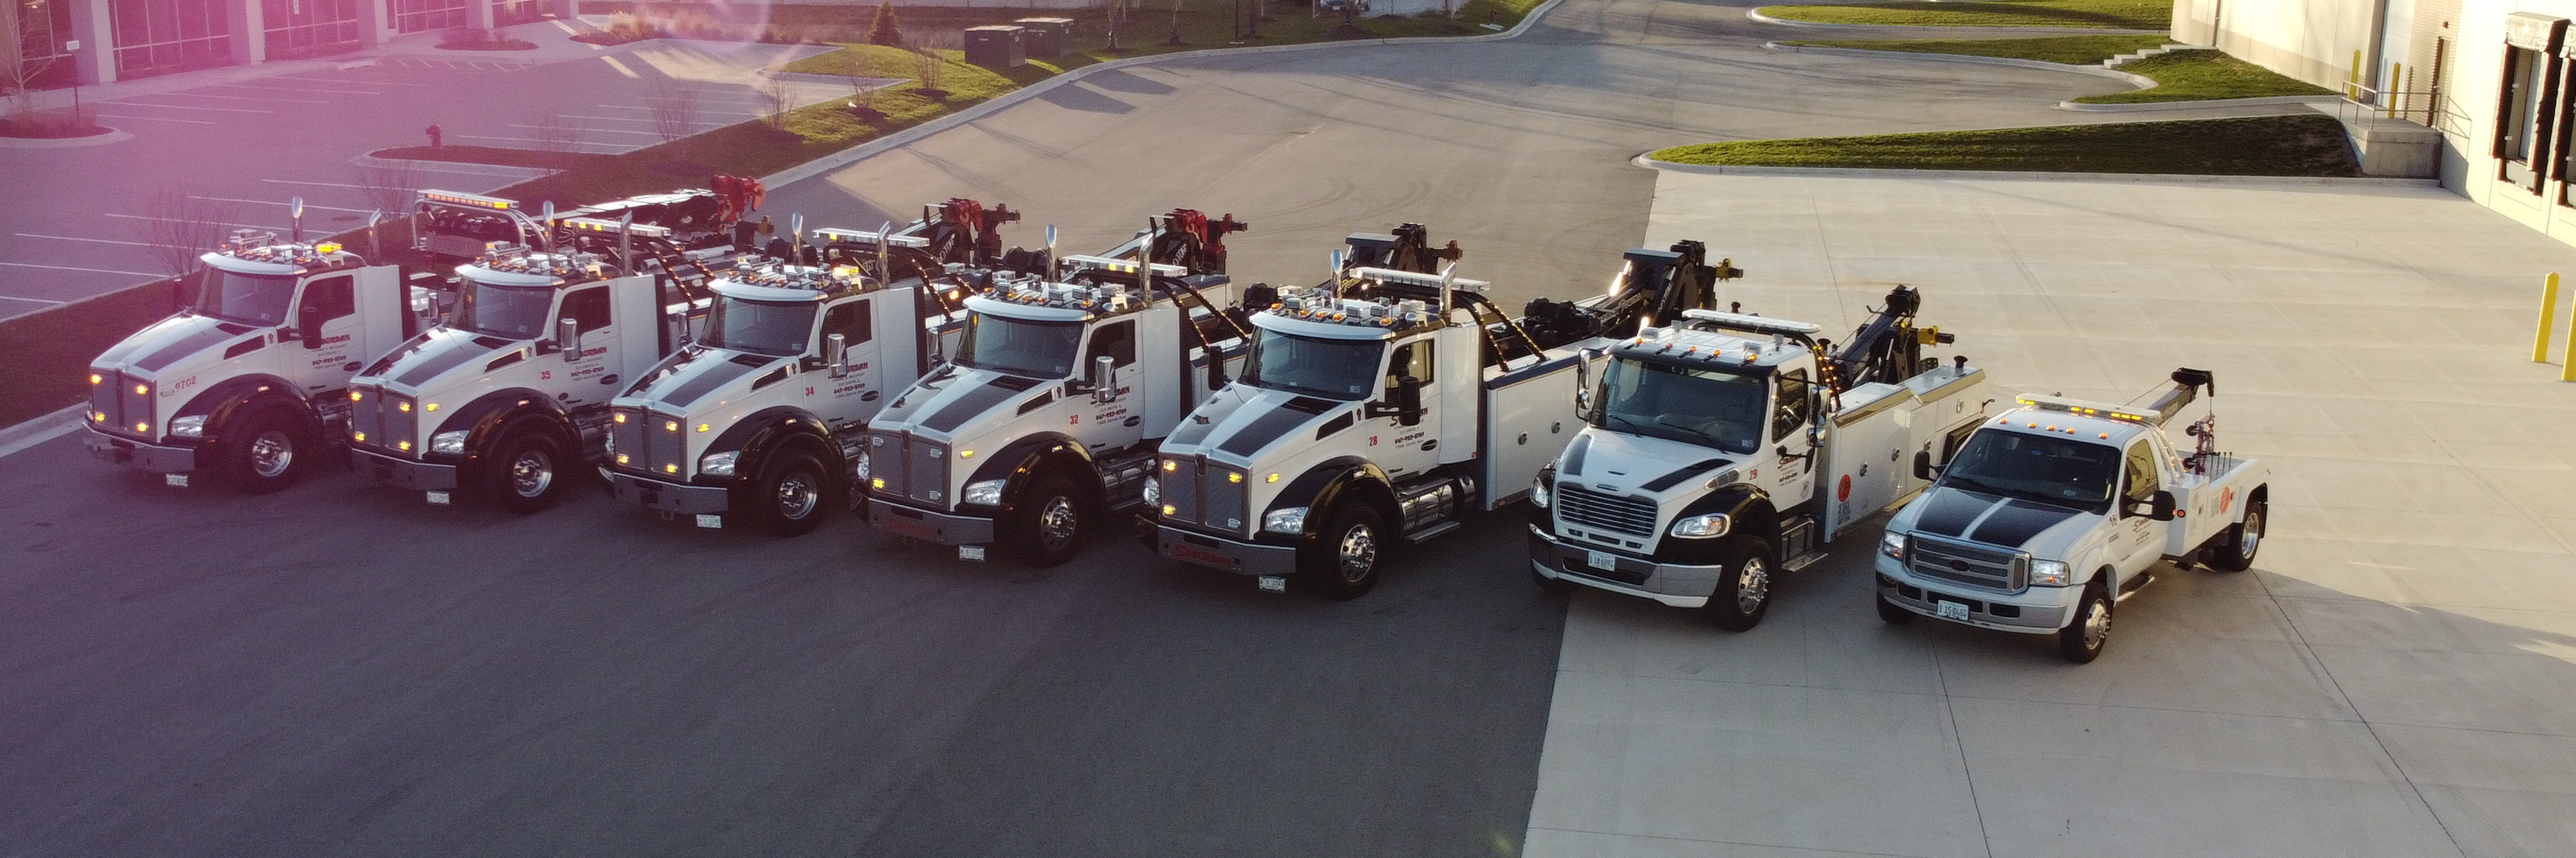 Suburban Towing and Recovery Towing.com Profile Banner